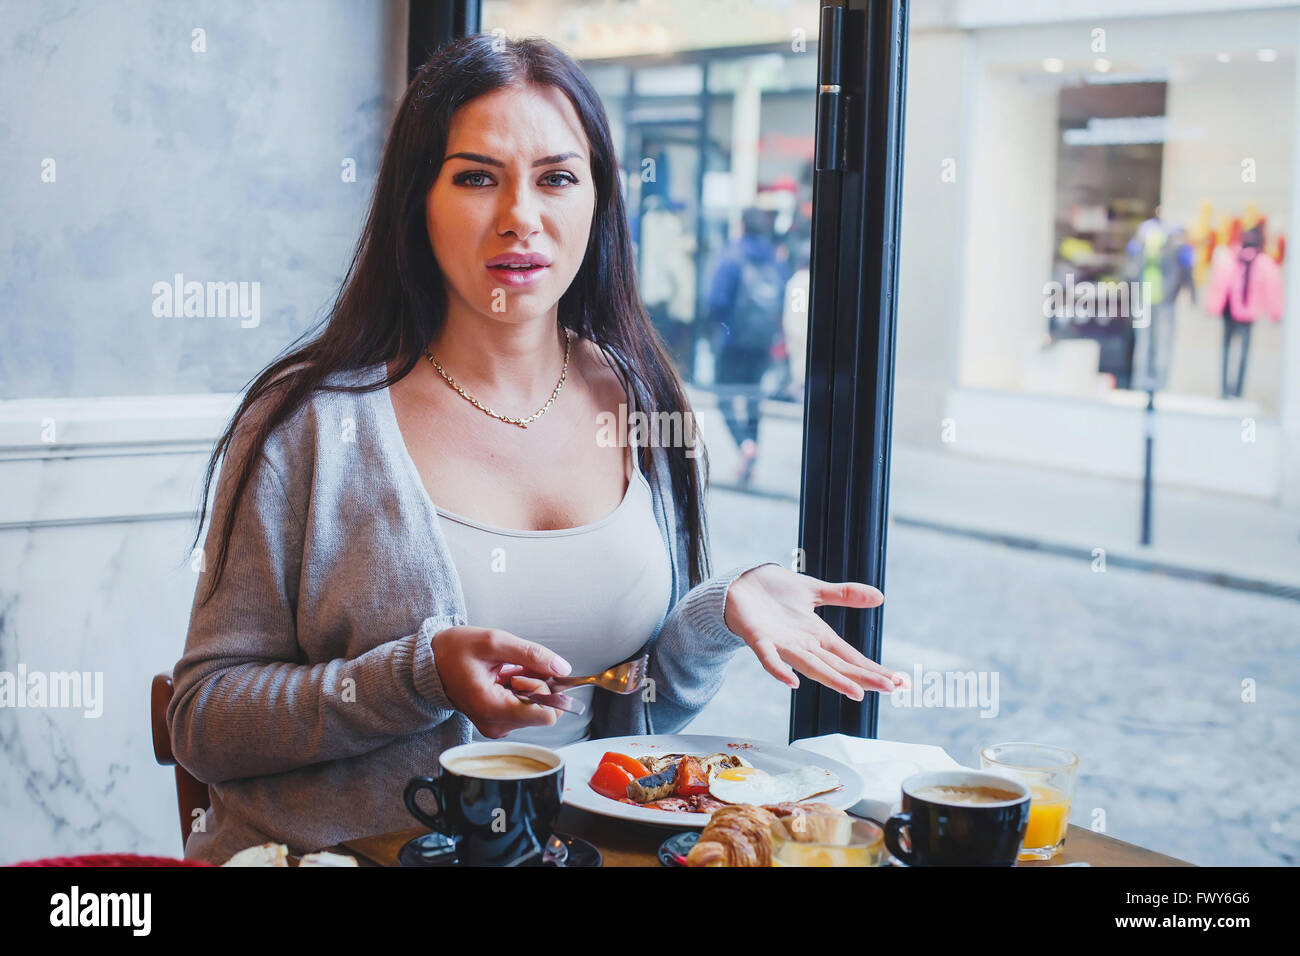 unhappy customer in restaurant, angry woman complaining about food and service in cafe - Stock Image